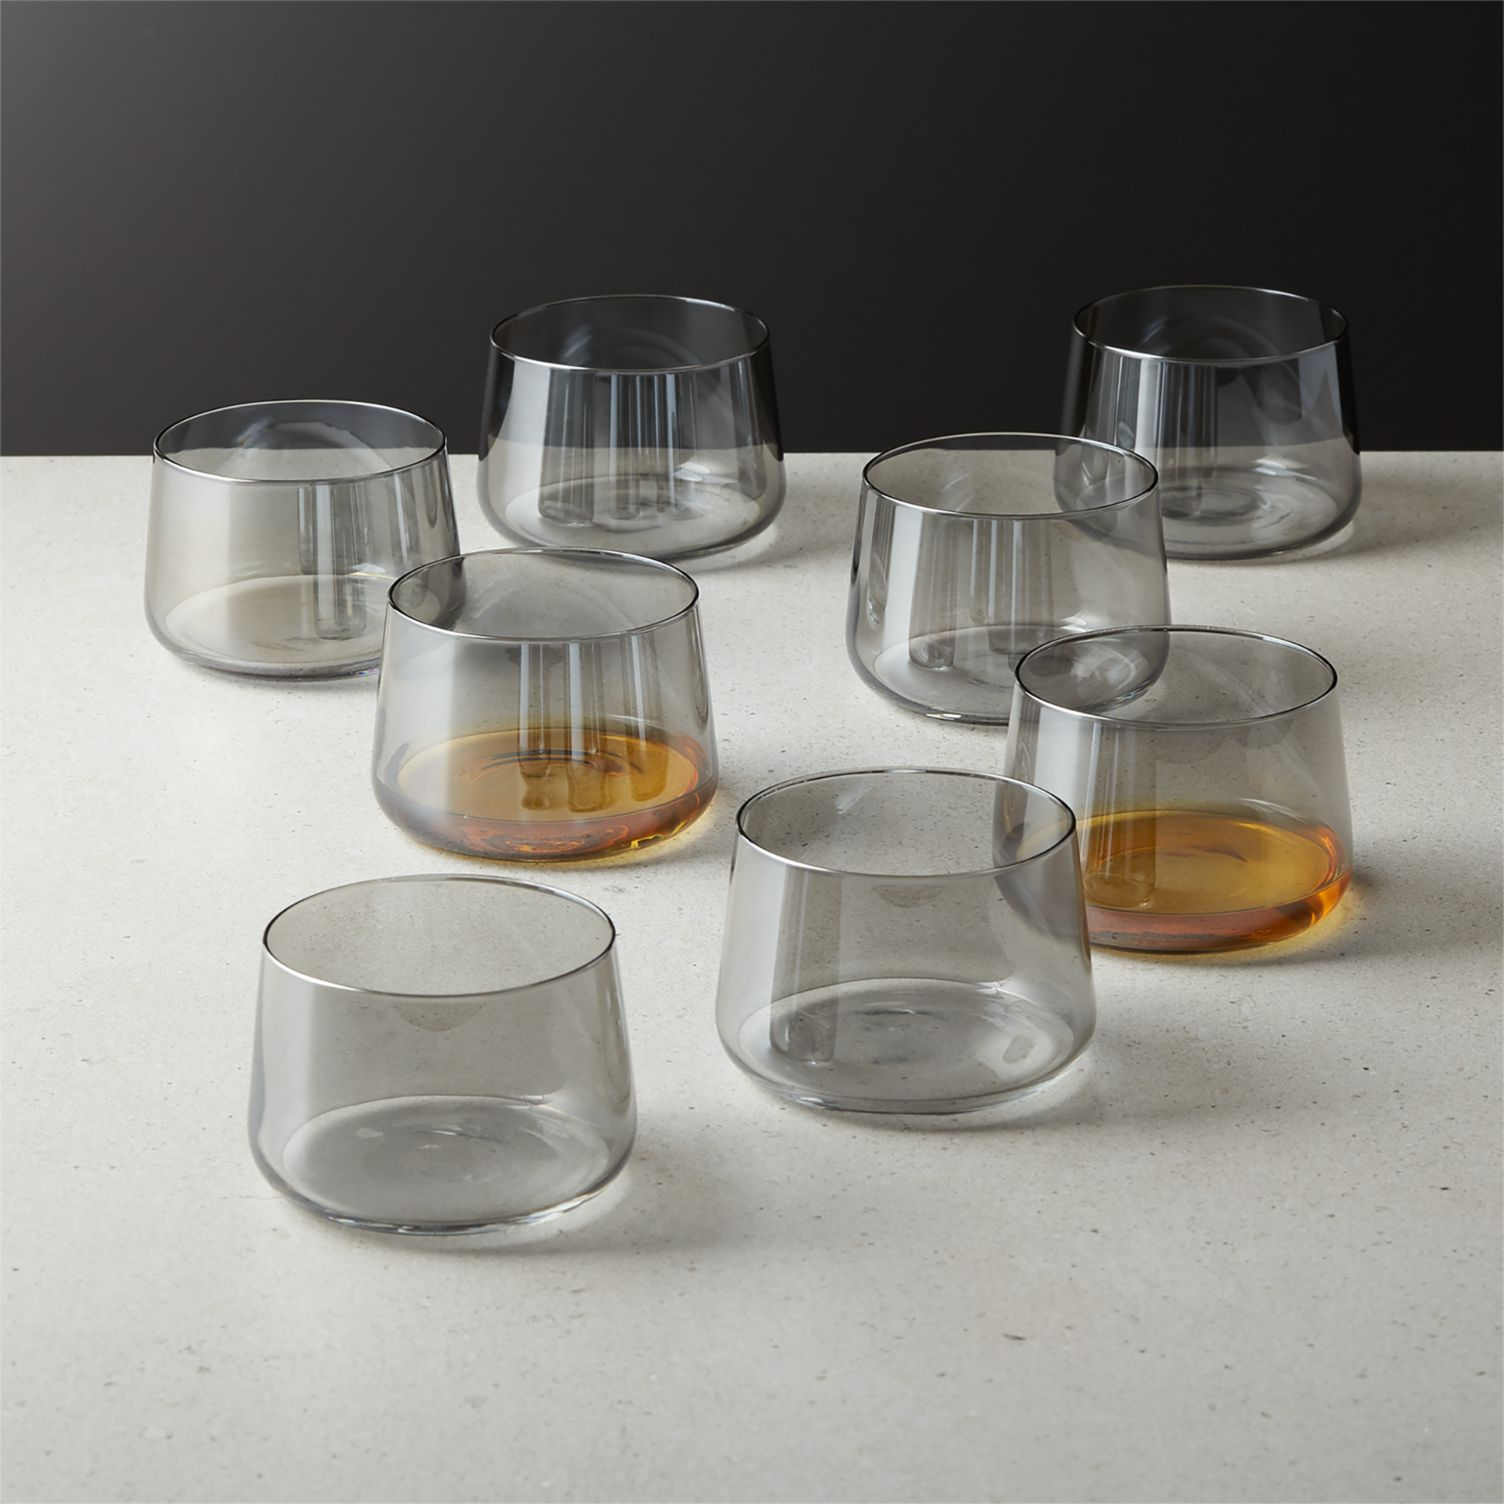 Smoky tasting glasses from CB2